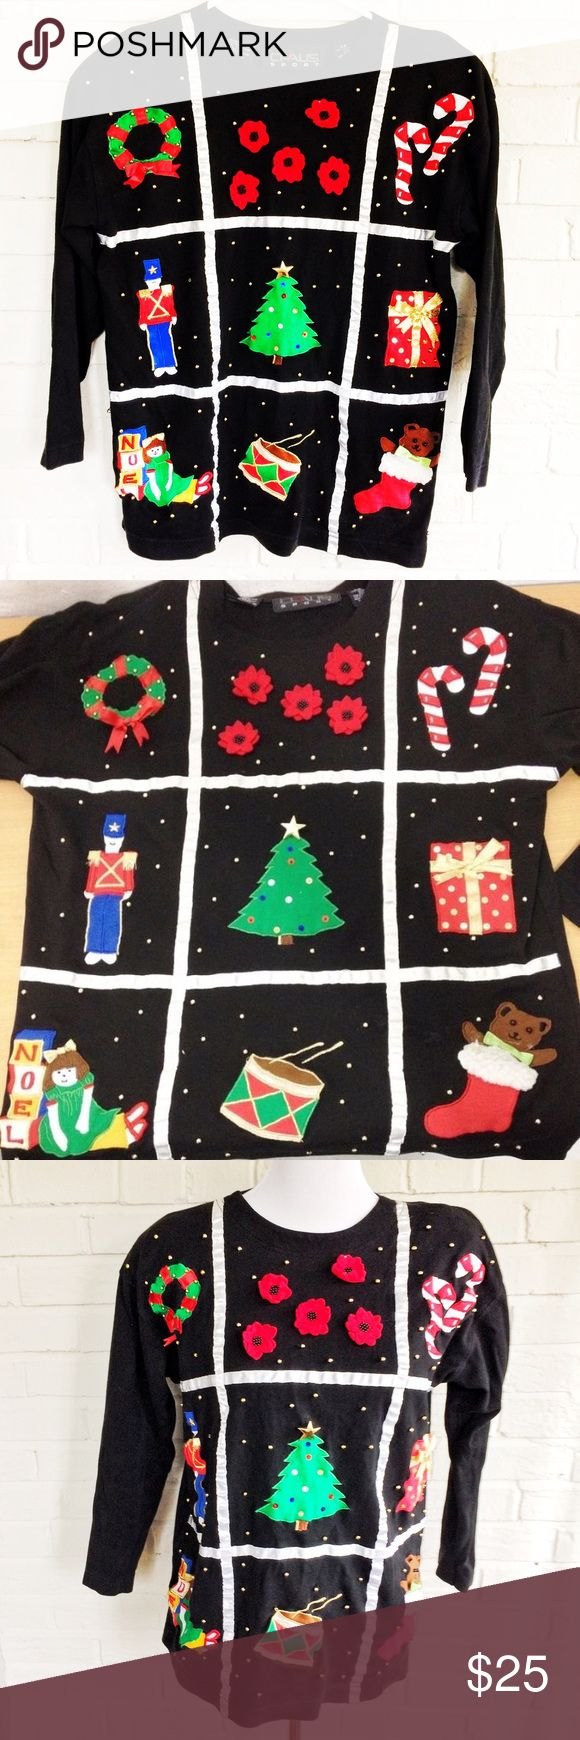 The Ugliest Christmas Sweater In All The Land Make an offer! Has shoulder pads as the cherry on the sundae! No trades. Bundle and save - I'm a fast shipper! chaus Sweaters Crew & Scoop Necks